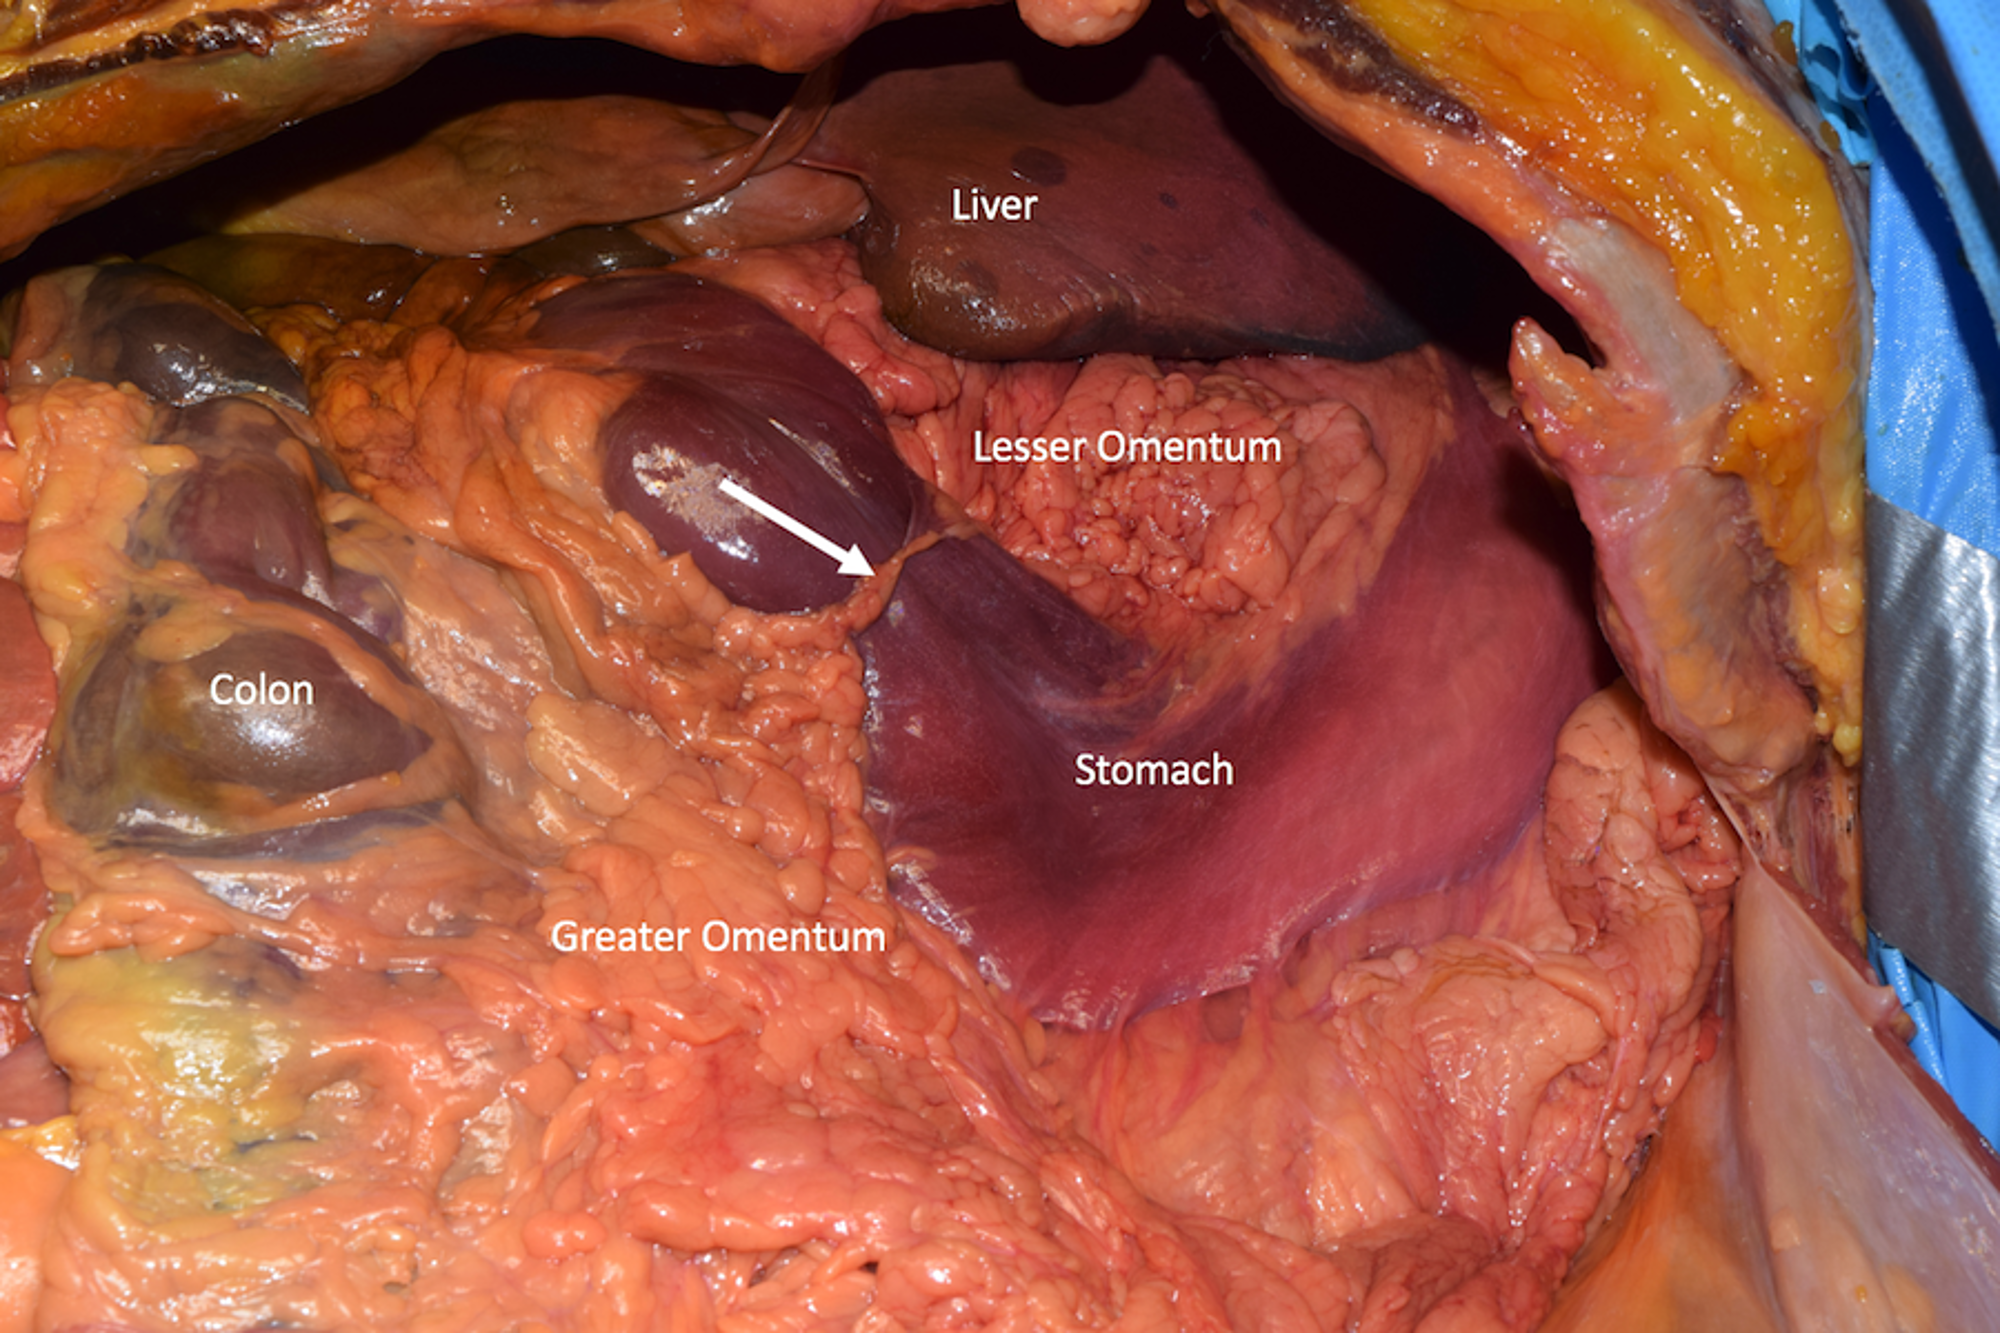 Cureus Constriction Of The Stomach By An Unusual Peritoneal Band